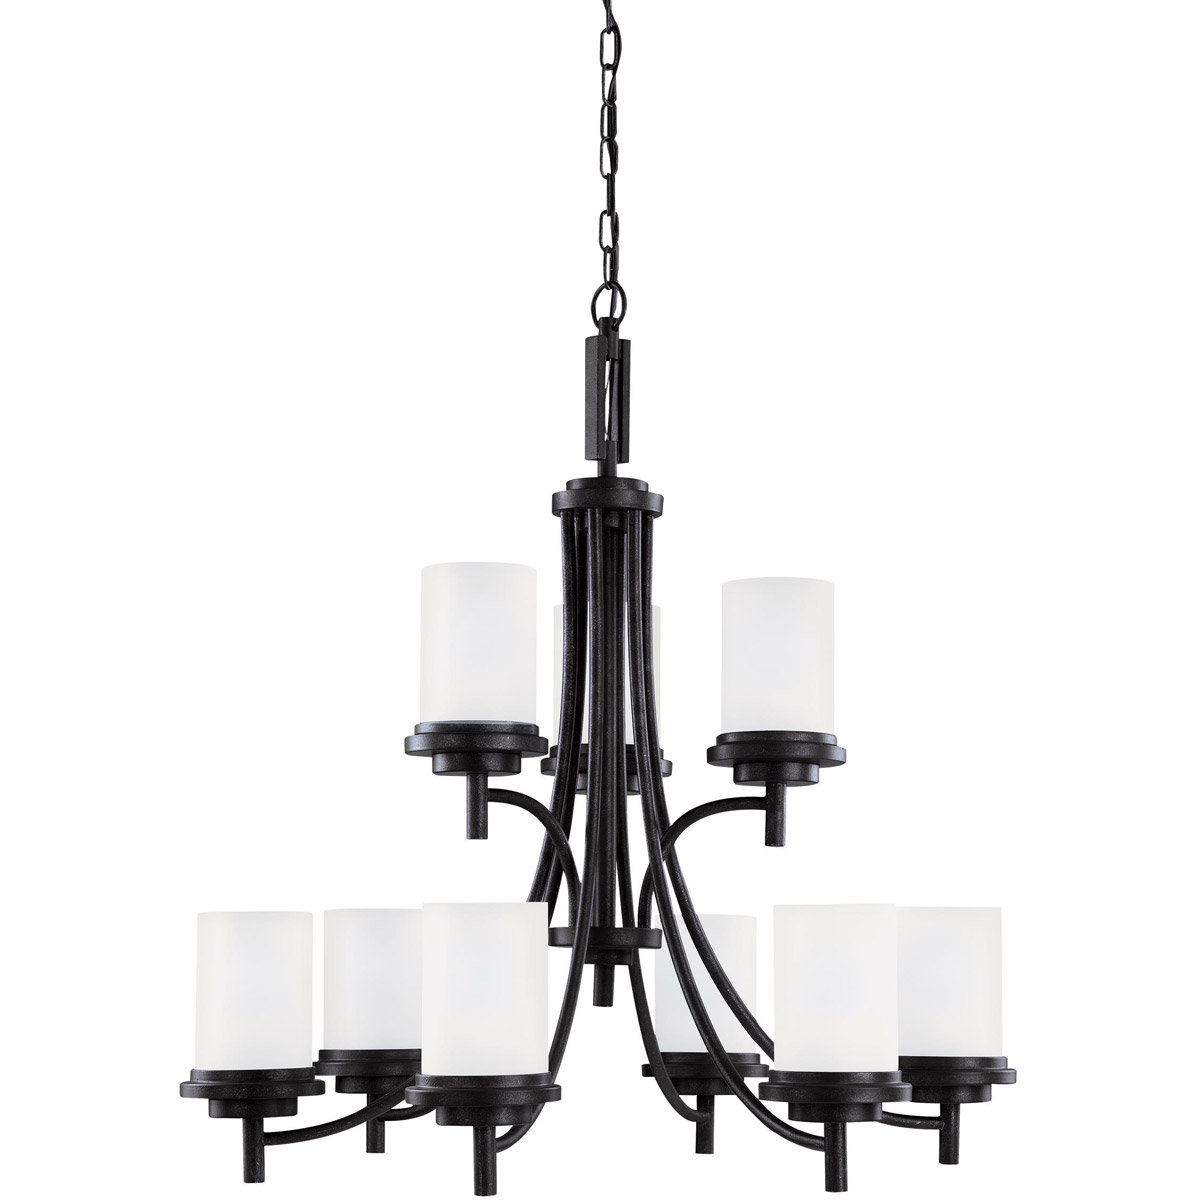 Sea Gull Lighting Winnetka 9 Light Chandelier in Blacksmith 31662-839